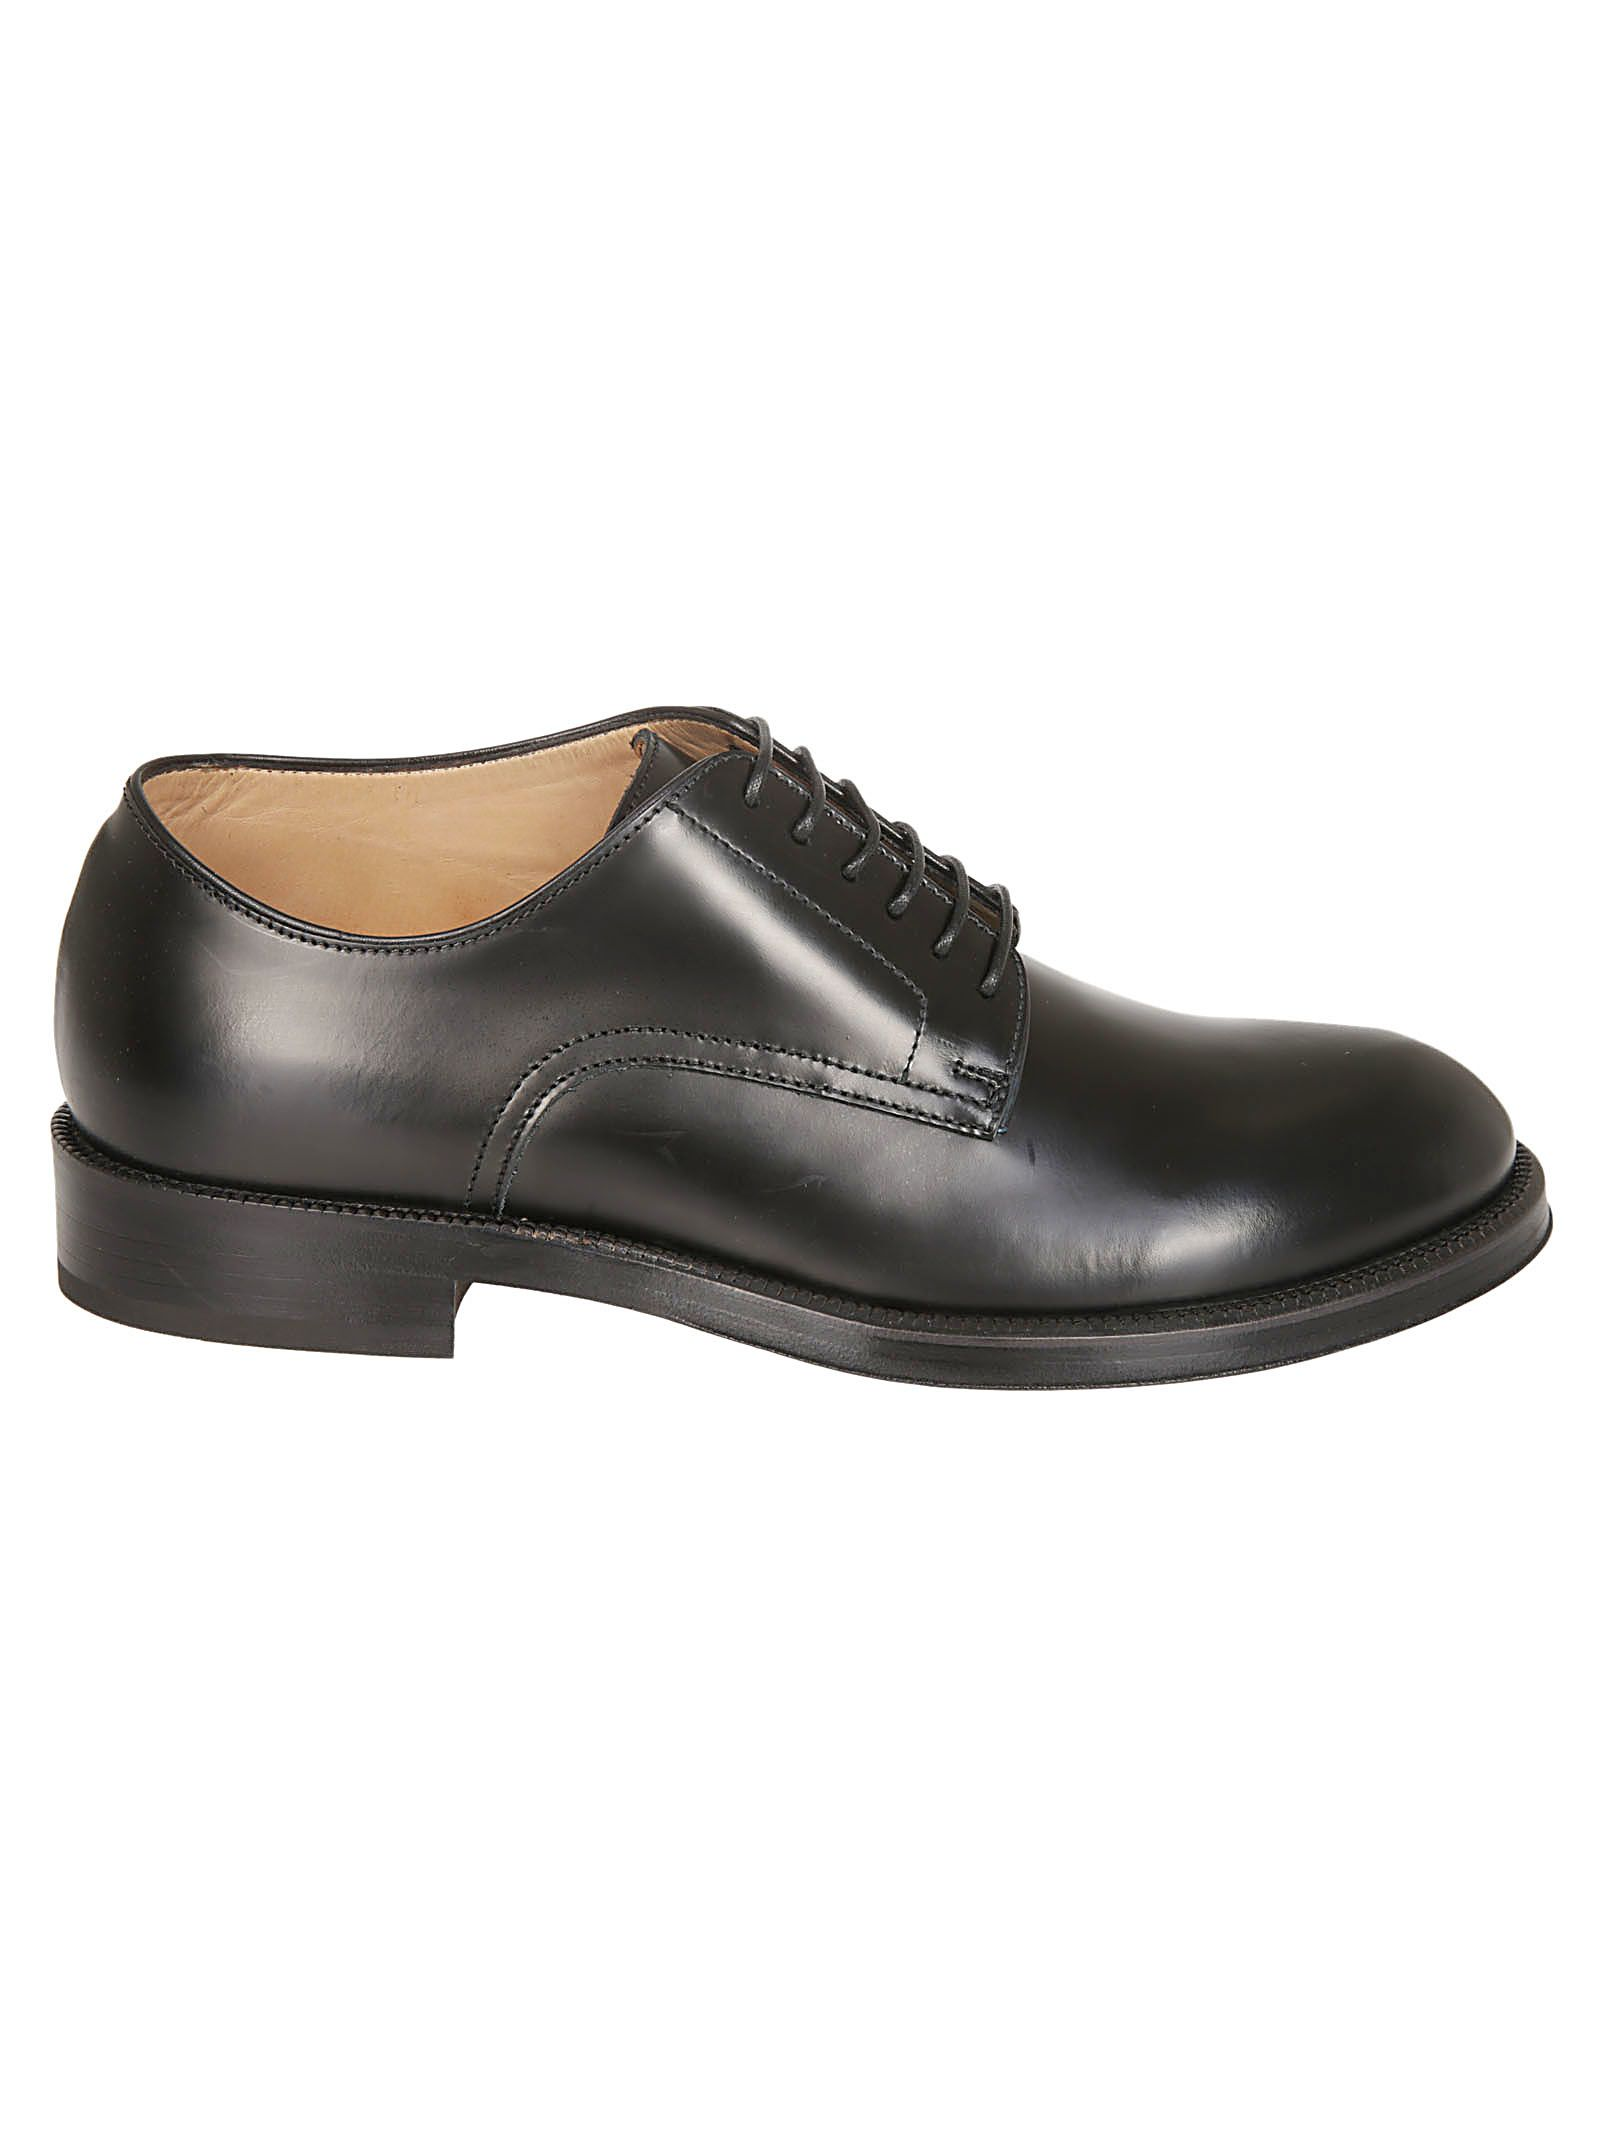 SEBOY'S Classic Oxford Shoes in Black